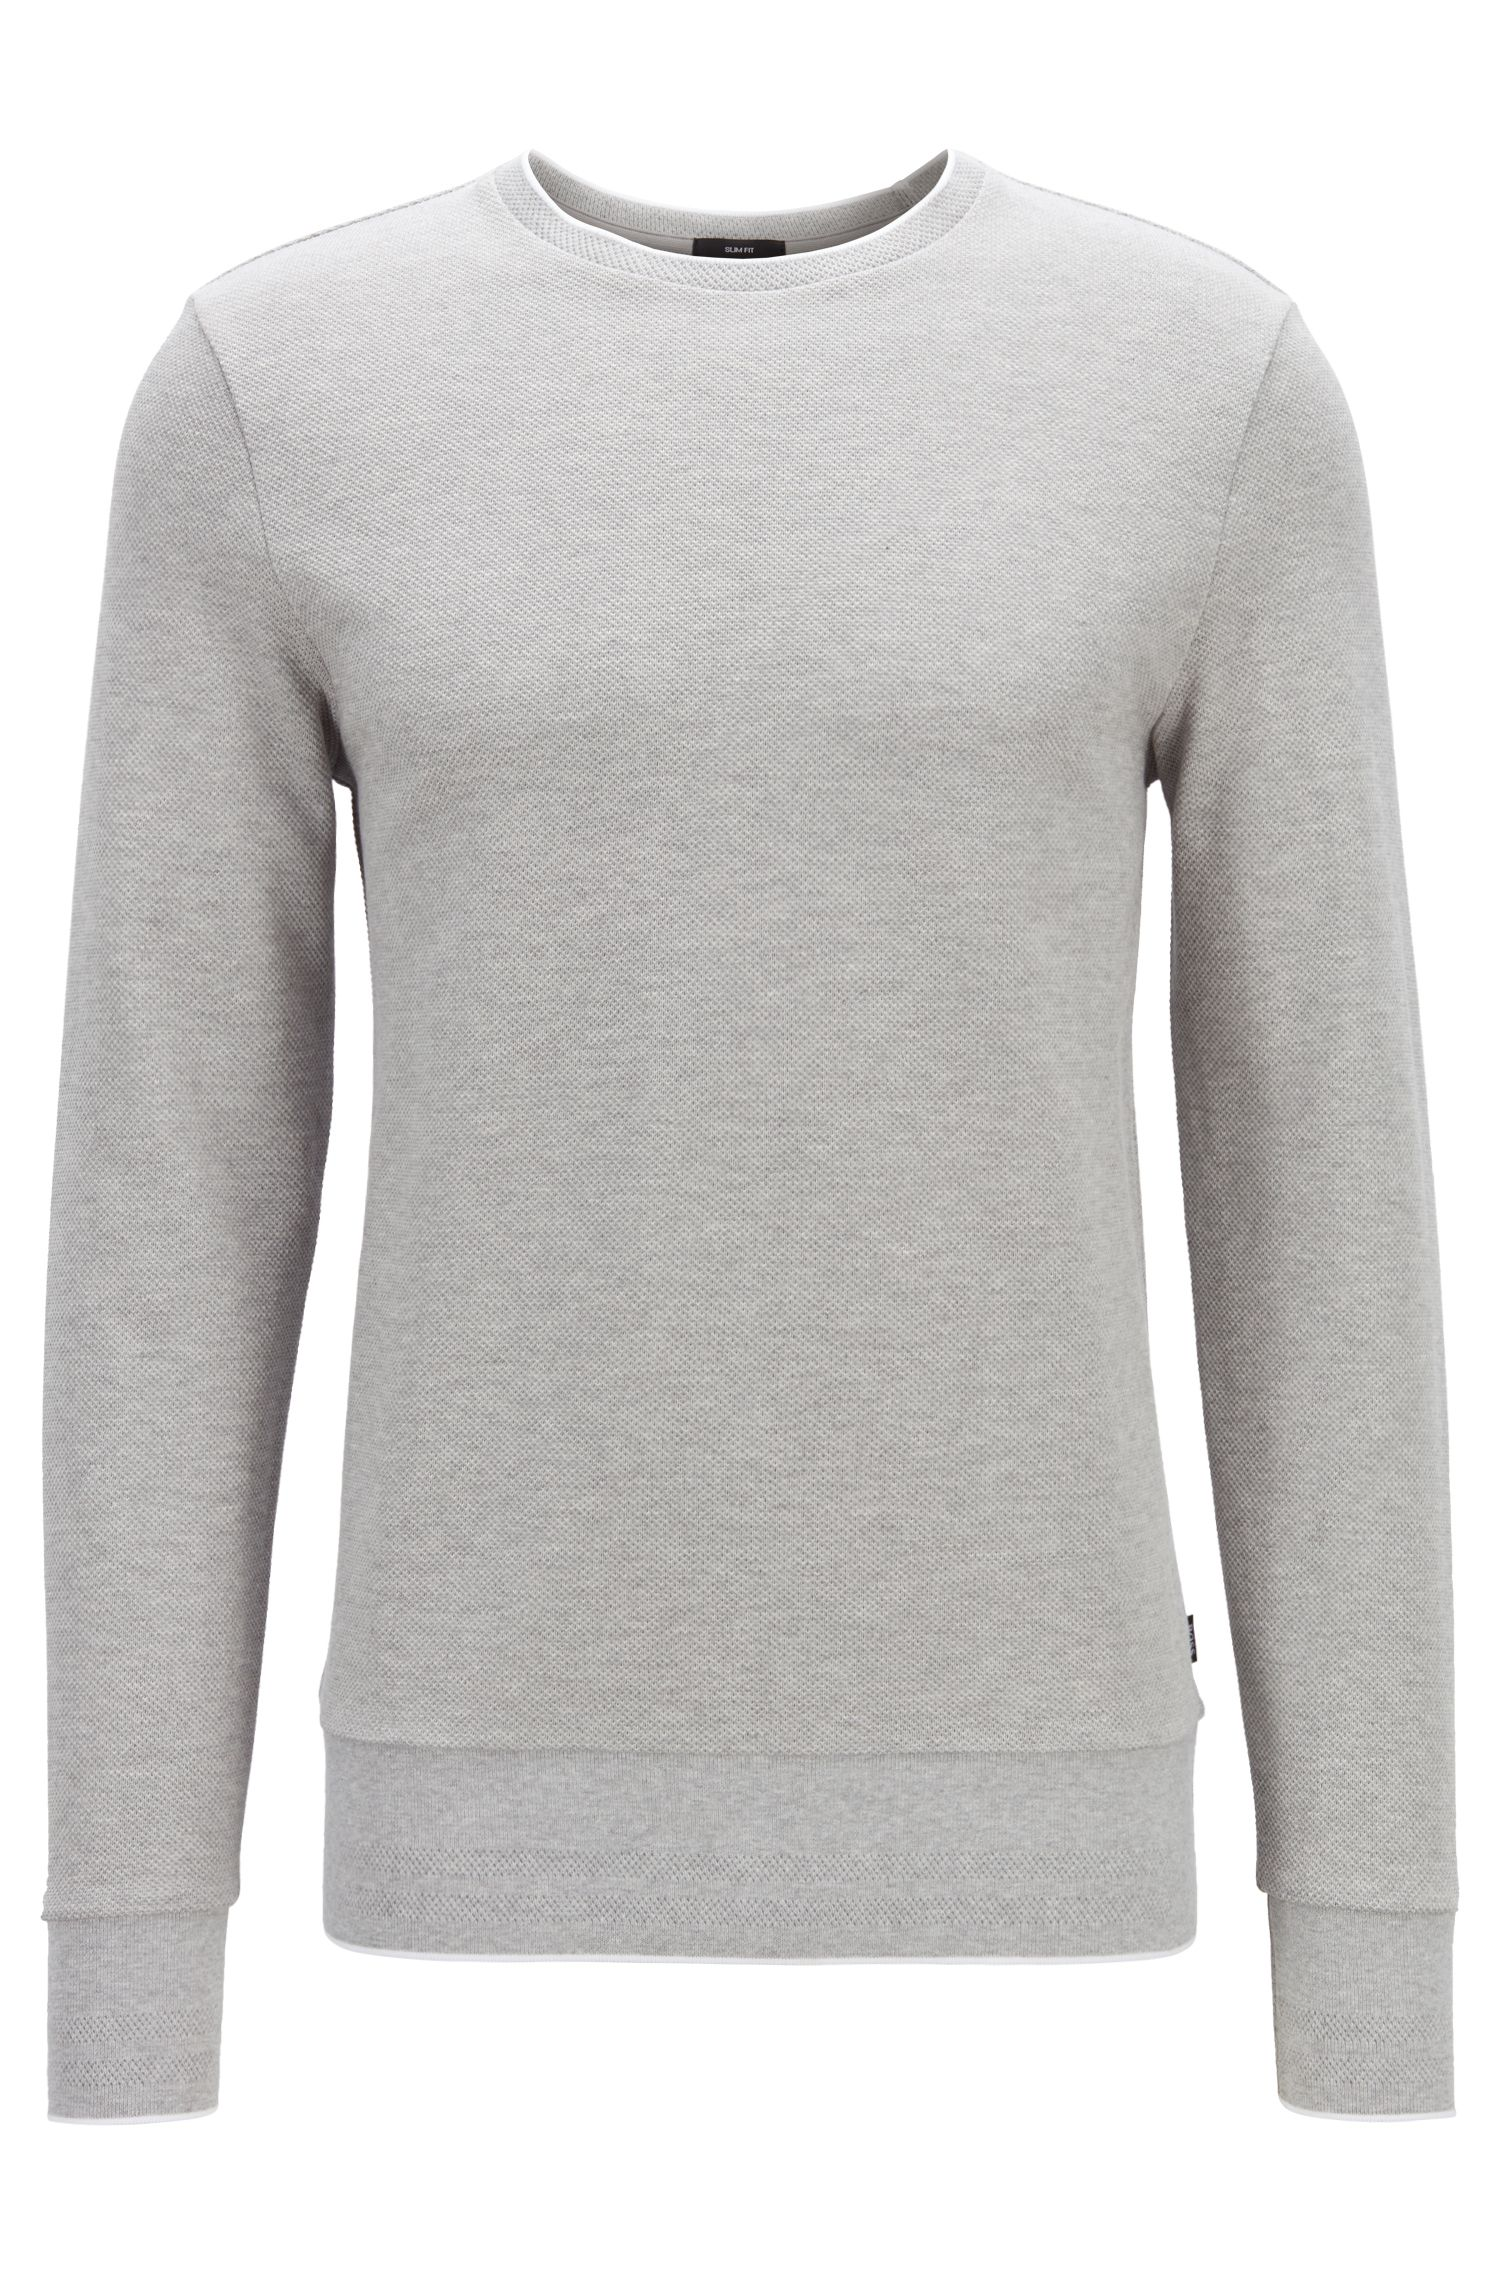 Slim-fit sweater in mesh-structured cotton, Open Grey